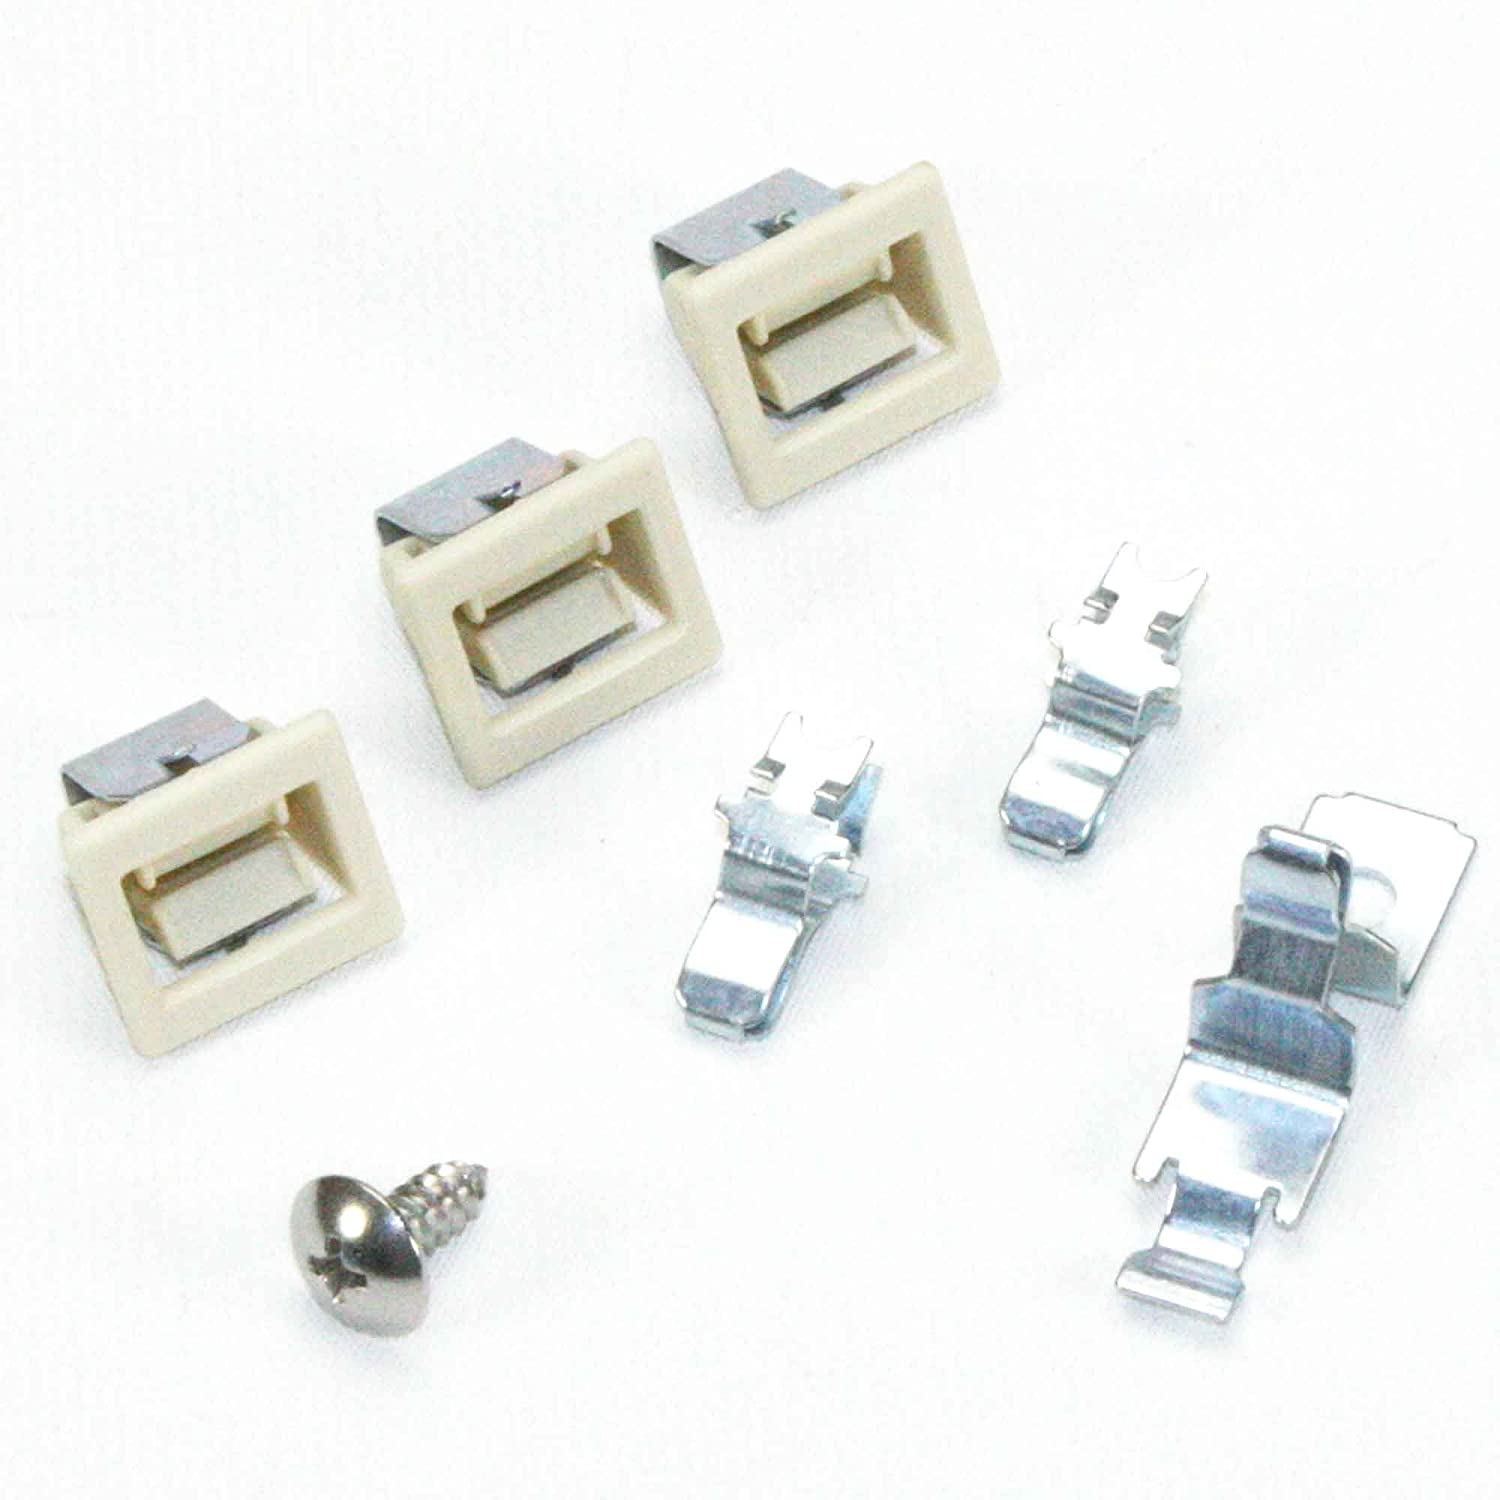 Supplying Demand 279570 Dryer Door Latch & Strike Kit Replaces 279337, 3392538